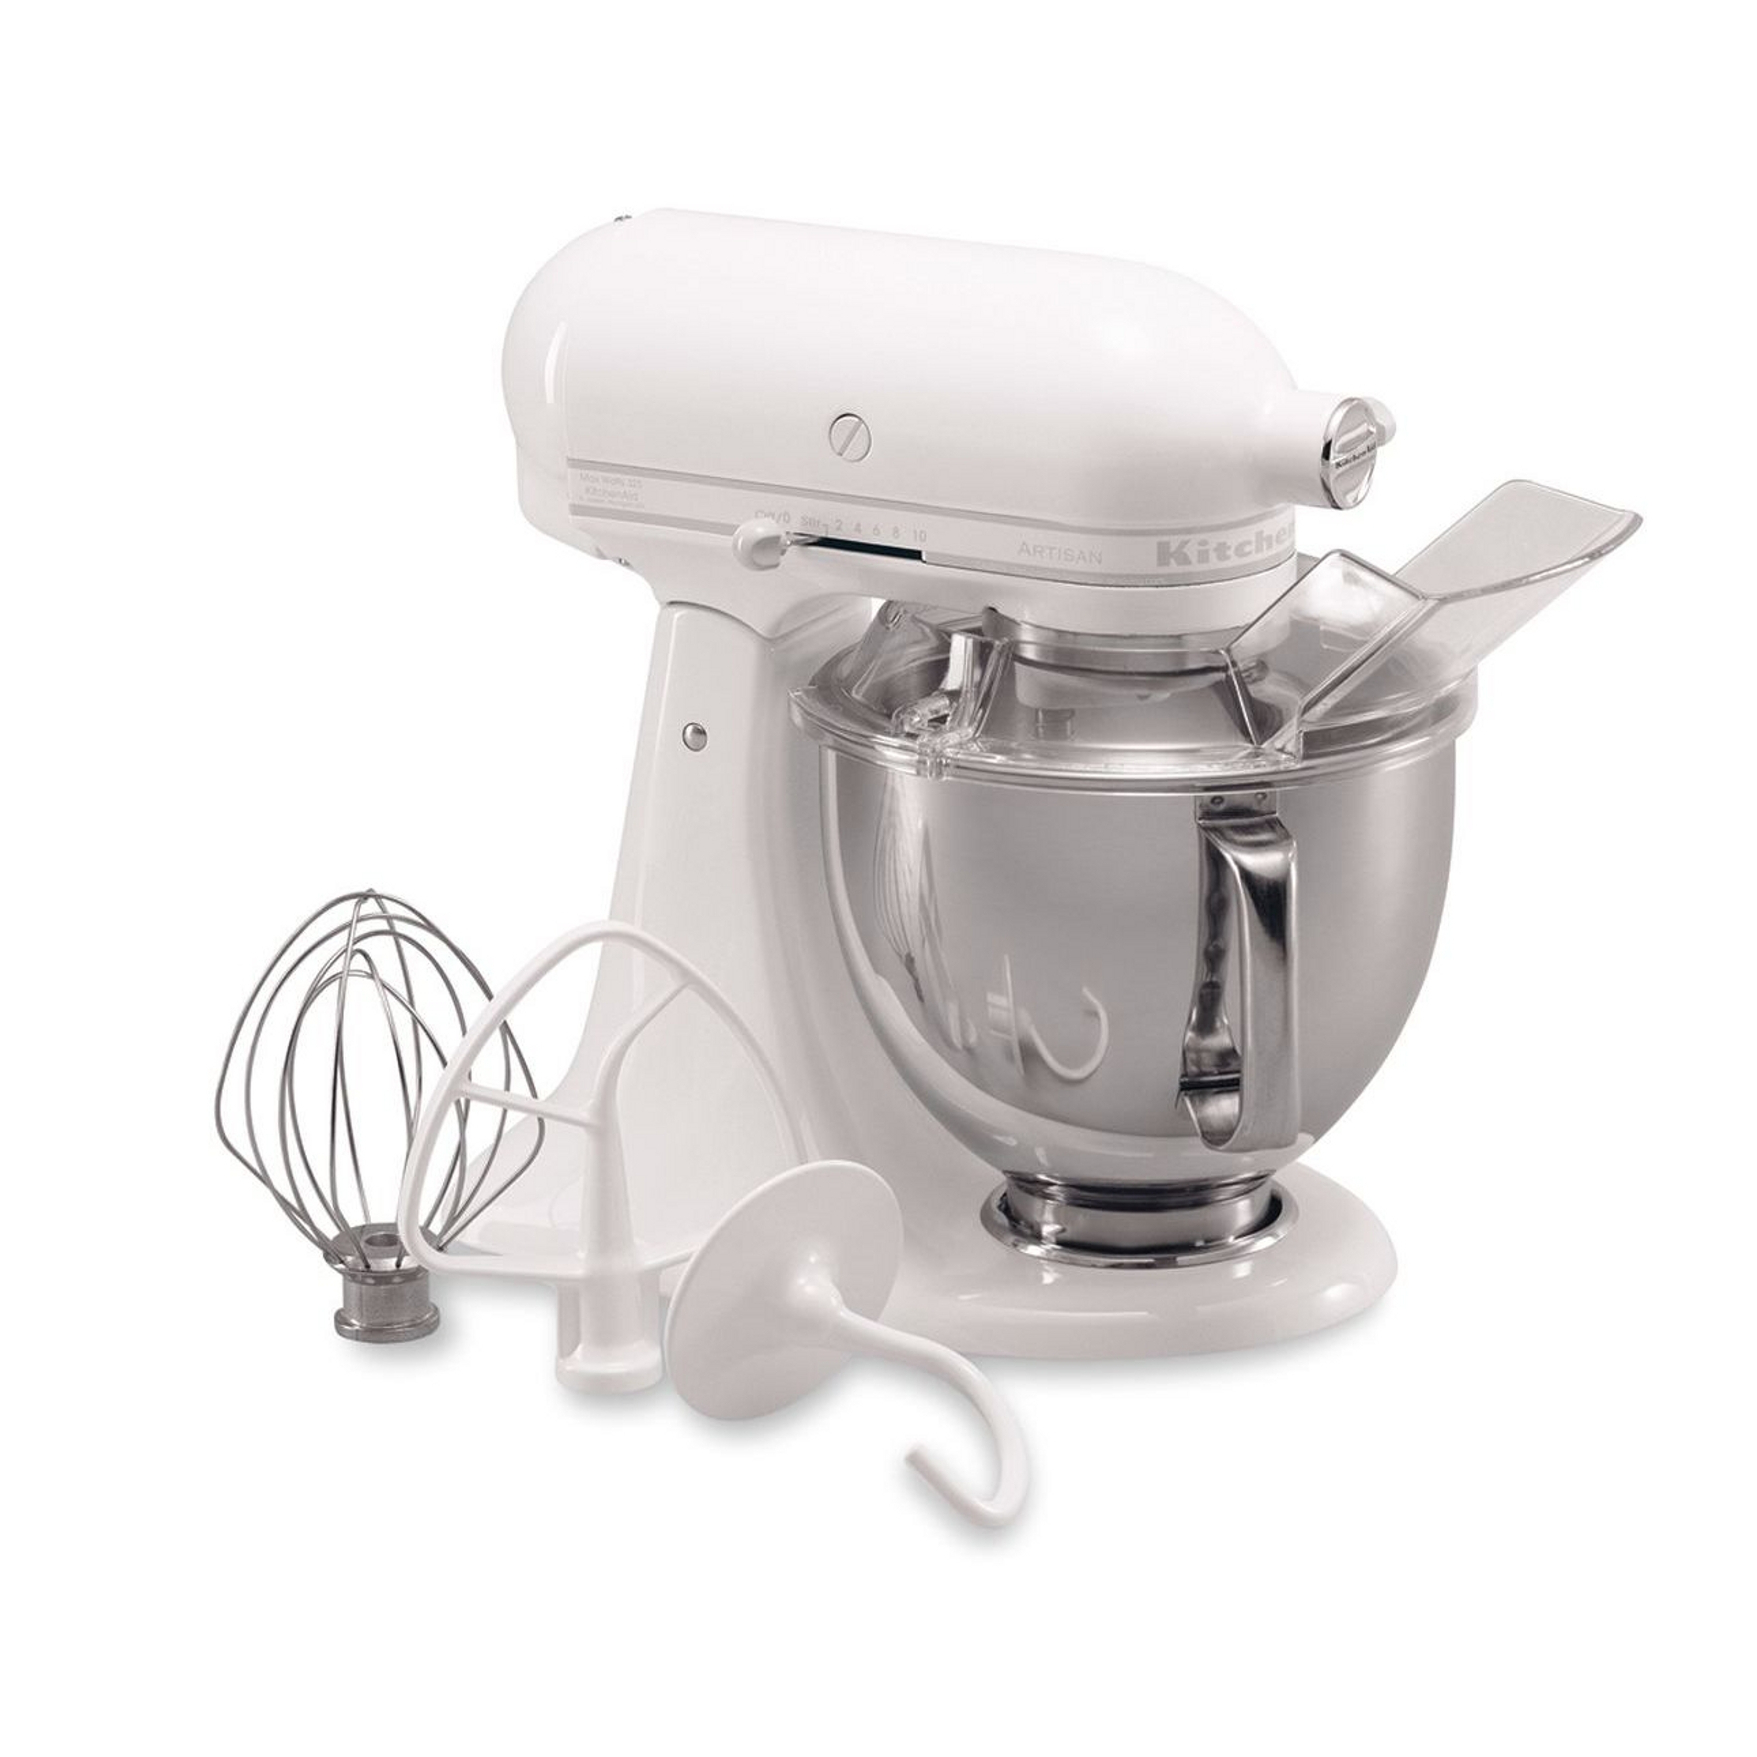 KitchenAid KSM150PSWW Artisan® Series White on White 5 Quart Stand Mixer